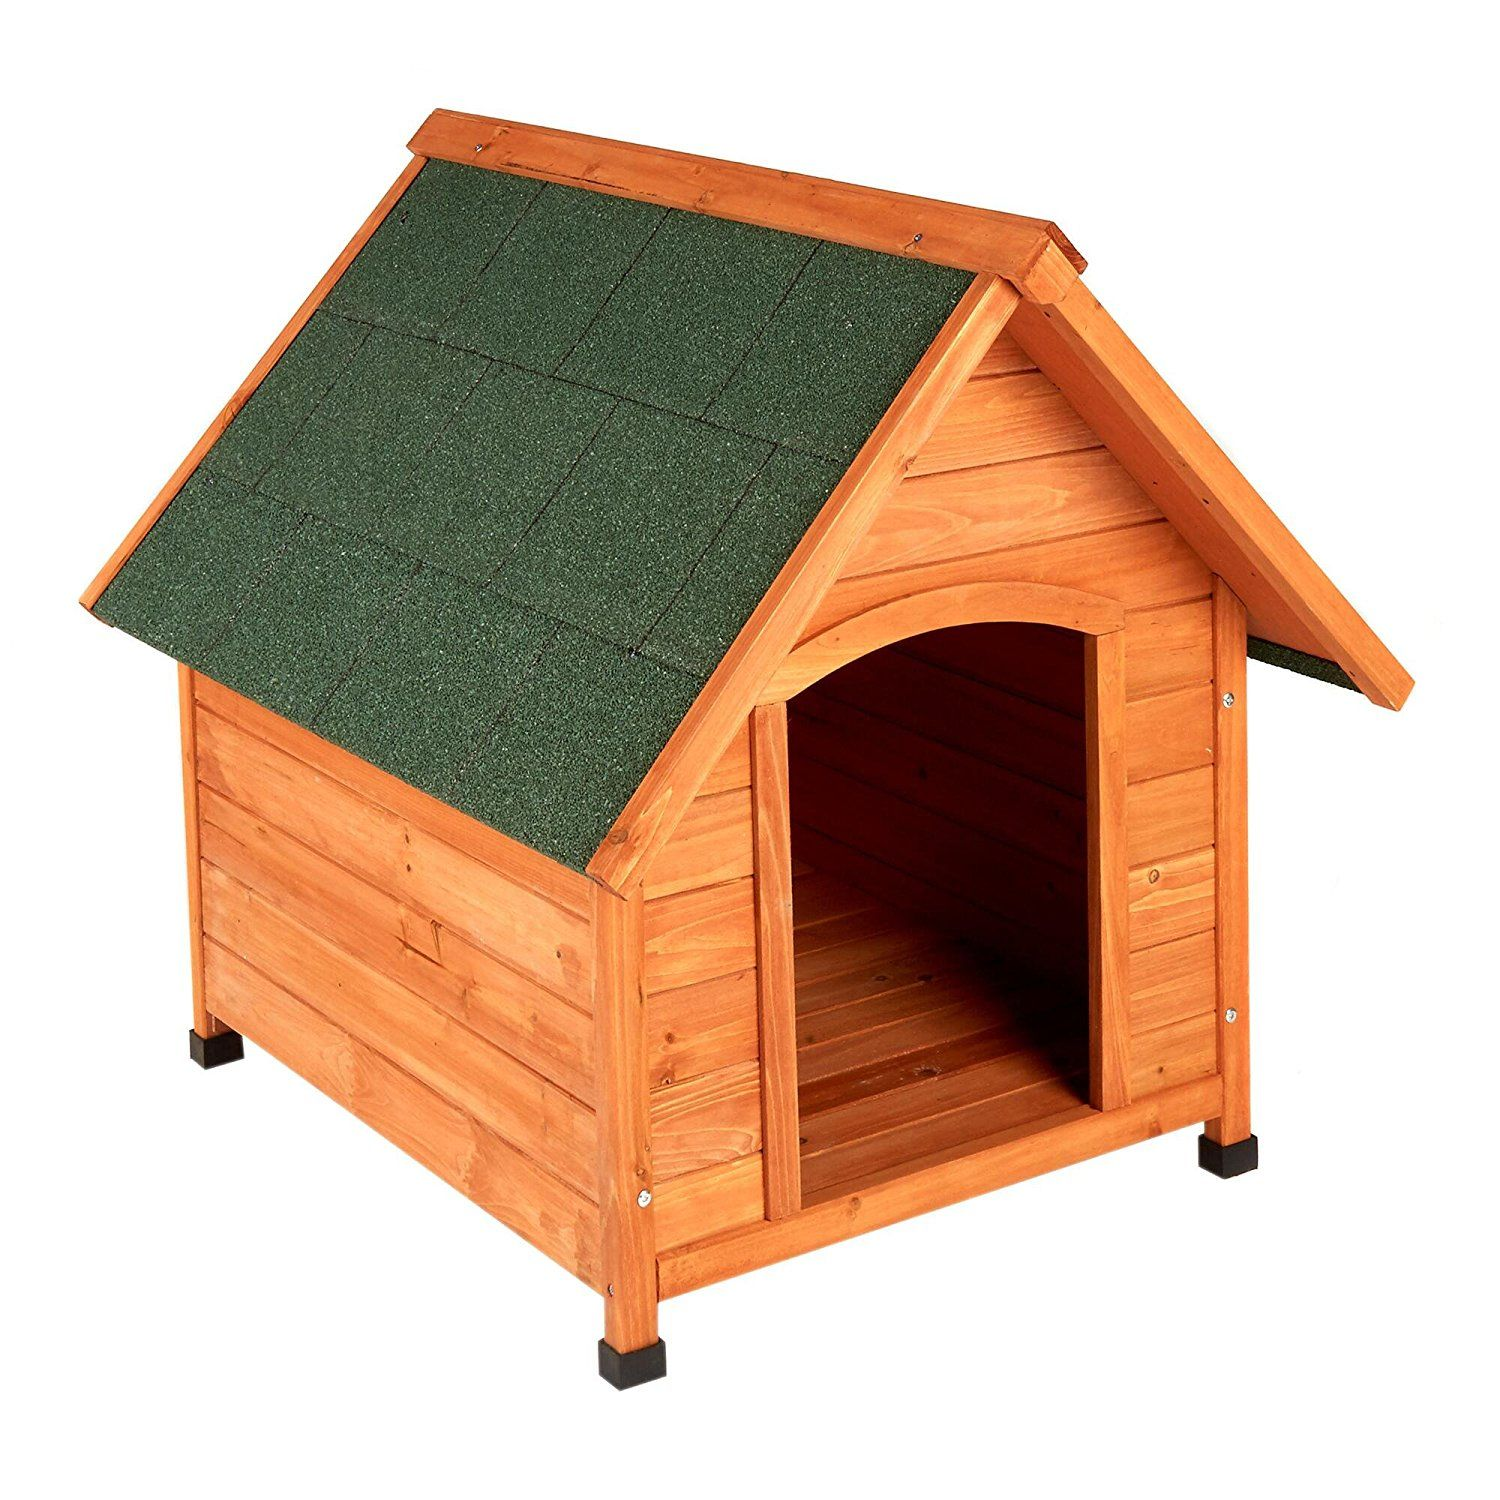 Fir Wood Dog House By Happy Paws Med Special Product Just For